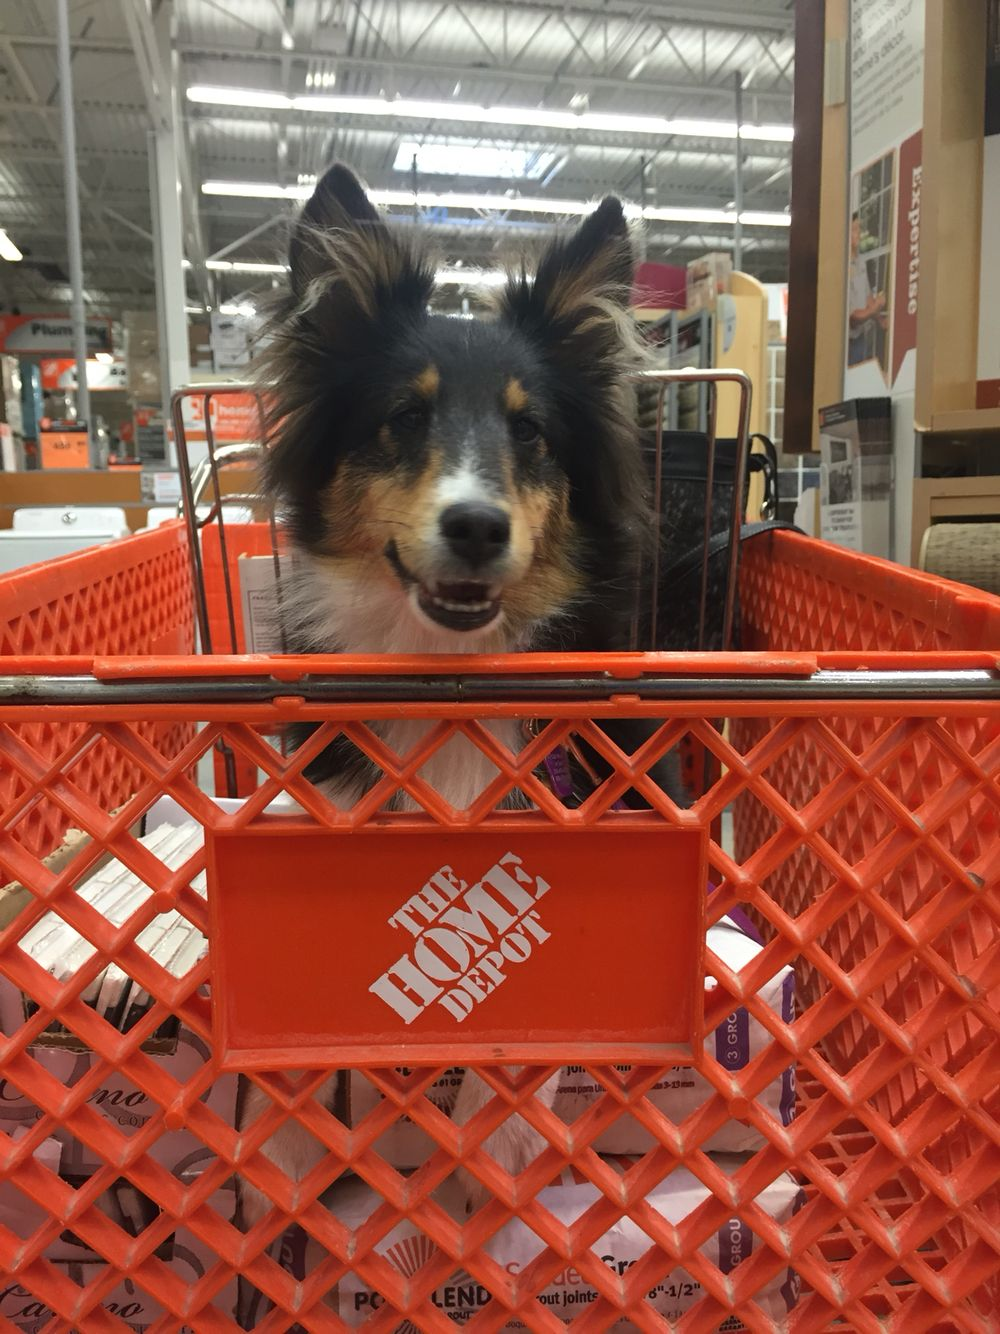 Thank you, Home Depot for being Pet Friendly. San Antonio